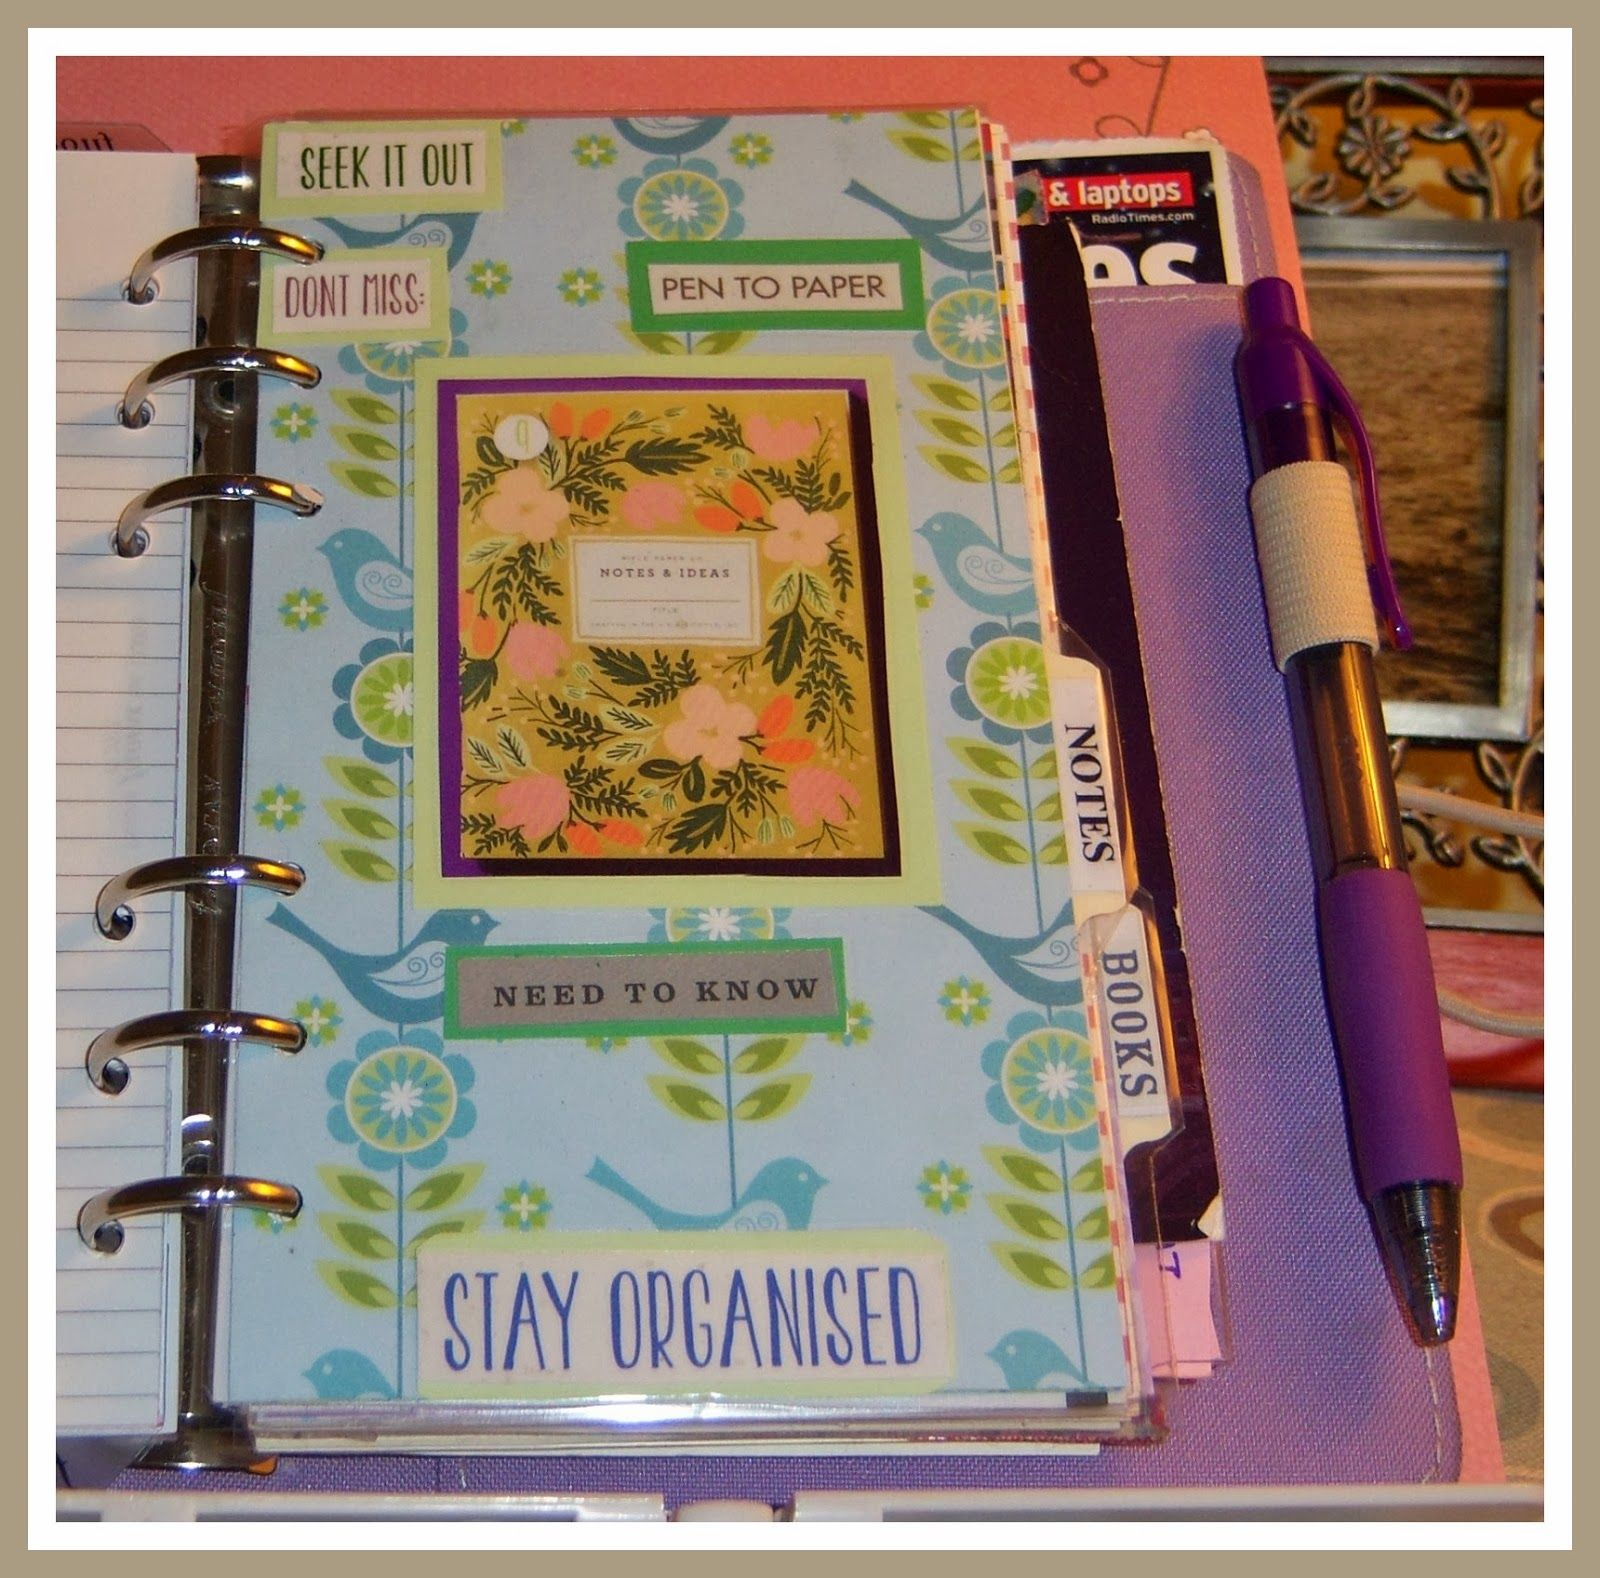 Songbird divider another replacement filofax planners bullet